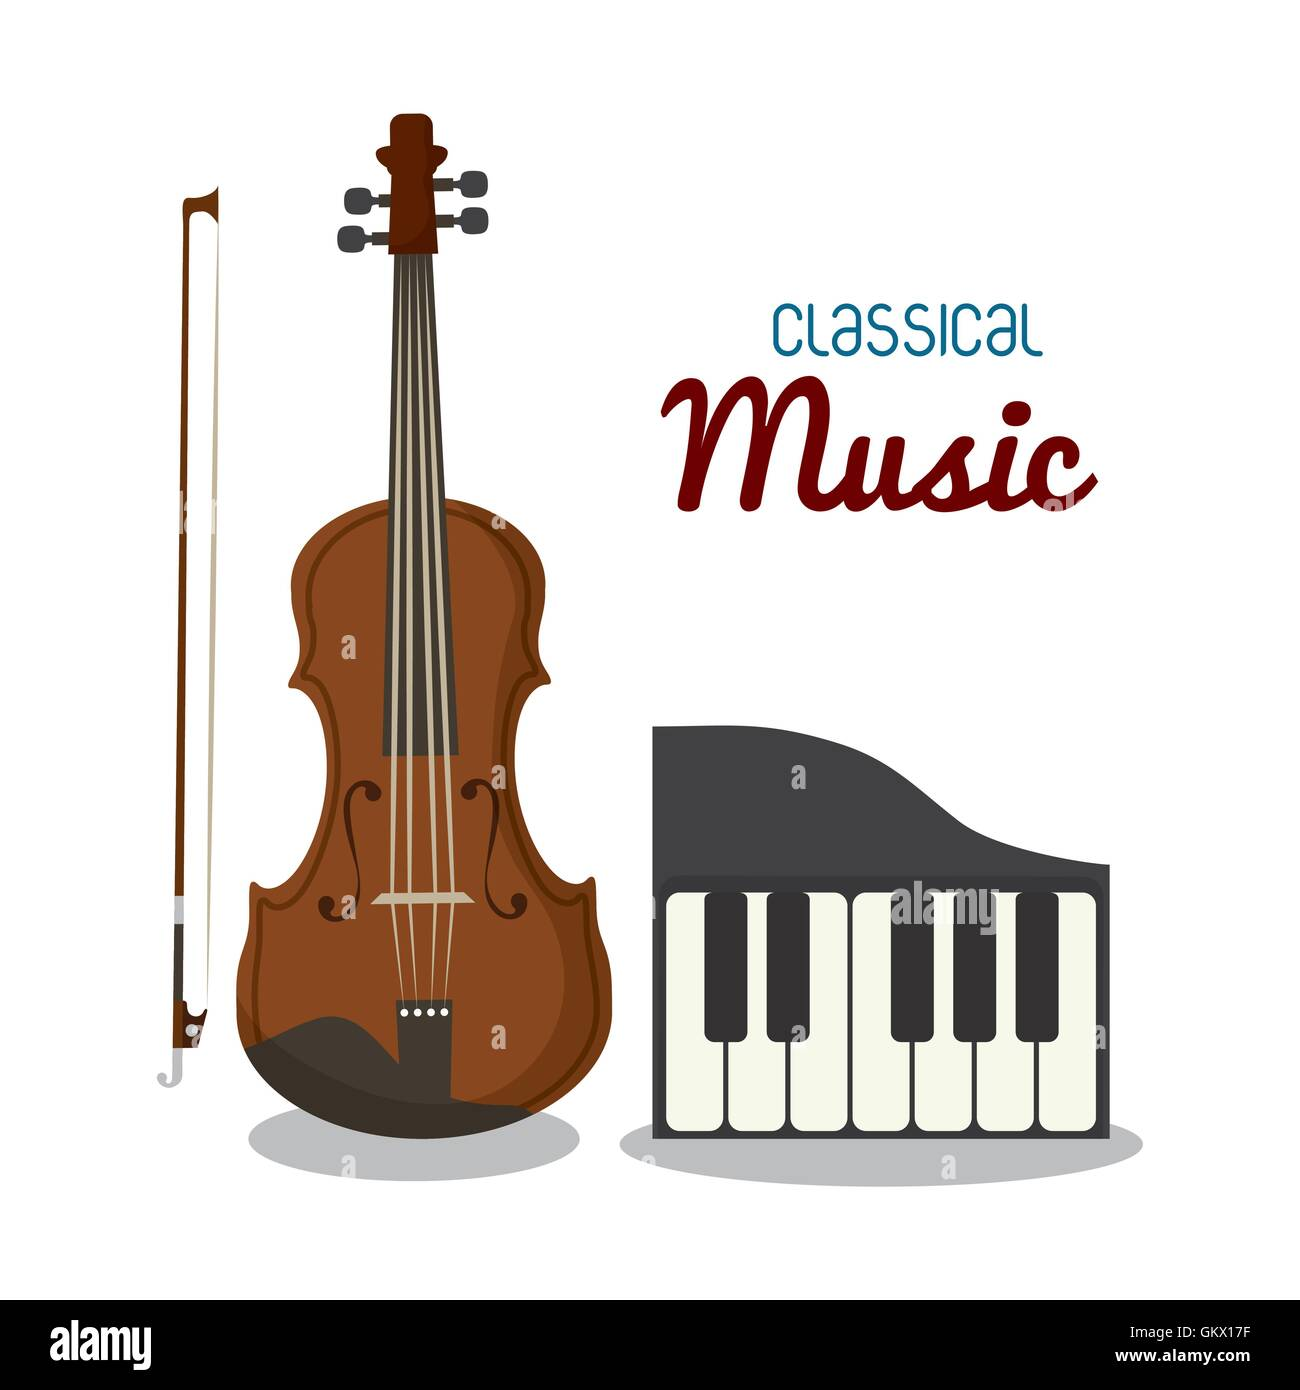 Icono De Cello Y Piano Grafico Vectorial Instrumento